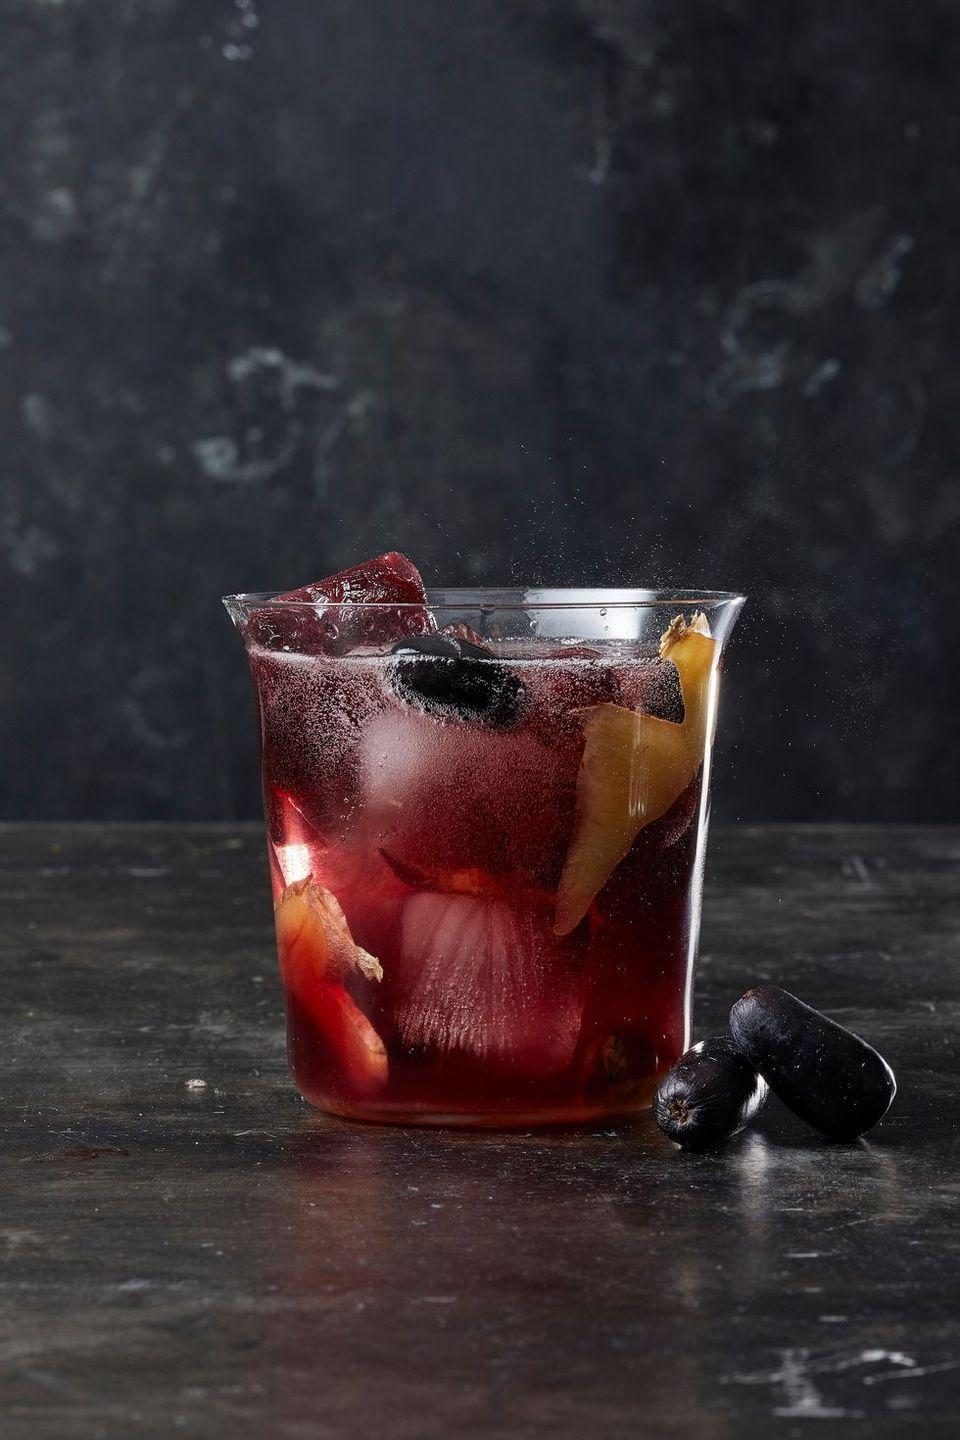 "<p>Bubbly prosecco makes this spooky cocktail oh-so-festive.</p><p><em><a href=""https://www.goodhousekeeping.com/food-recipes/a28554897/sparkling-ginger-sangria-recipe/"" rel=""nofollow noopener"" target=""_blank"" data-ylk=""slk:Get the recipe for Sparkling Ginger Sangria »"" class=""link rapid-noclick-resp"">Get the recipe for Sparkling Ginger Sangria »</a></em></p>"